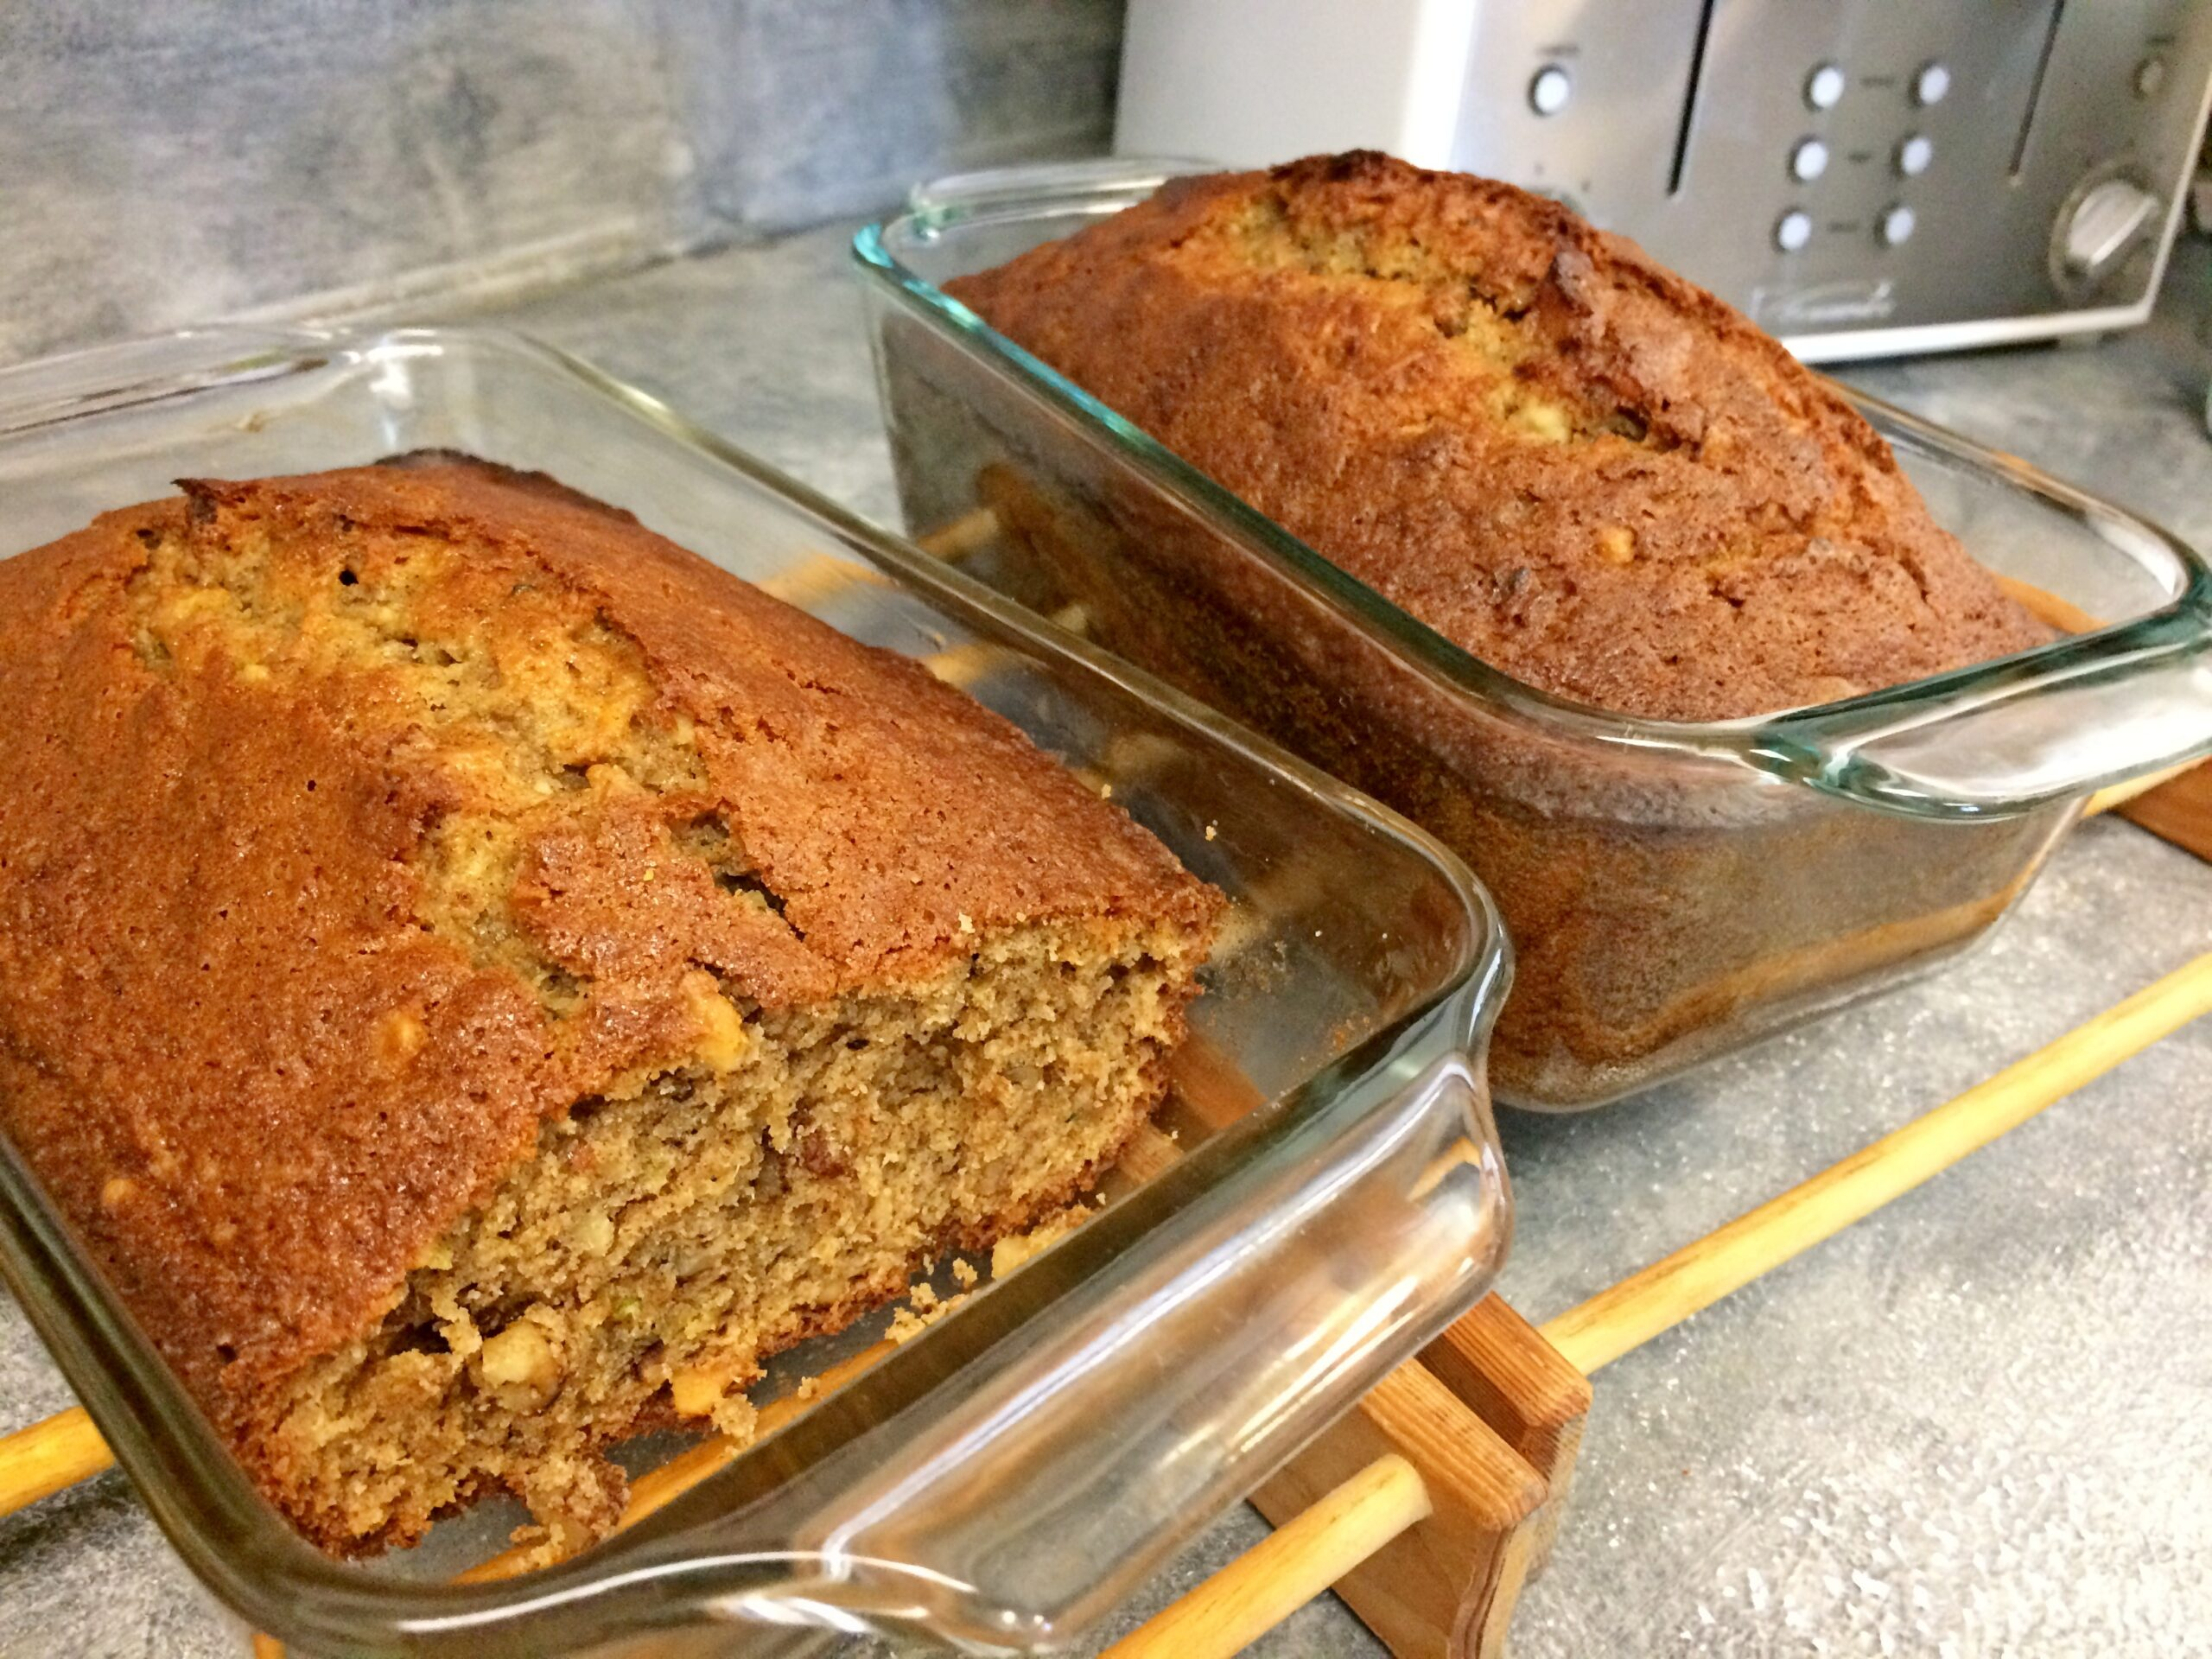 Going Into Fall with Zucchini Bread